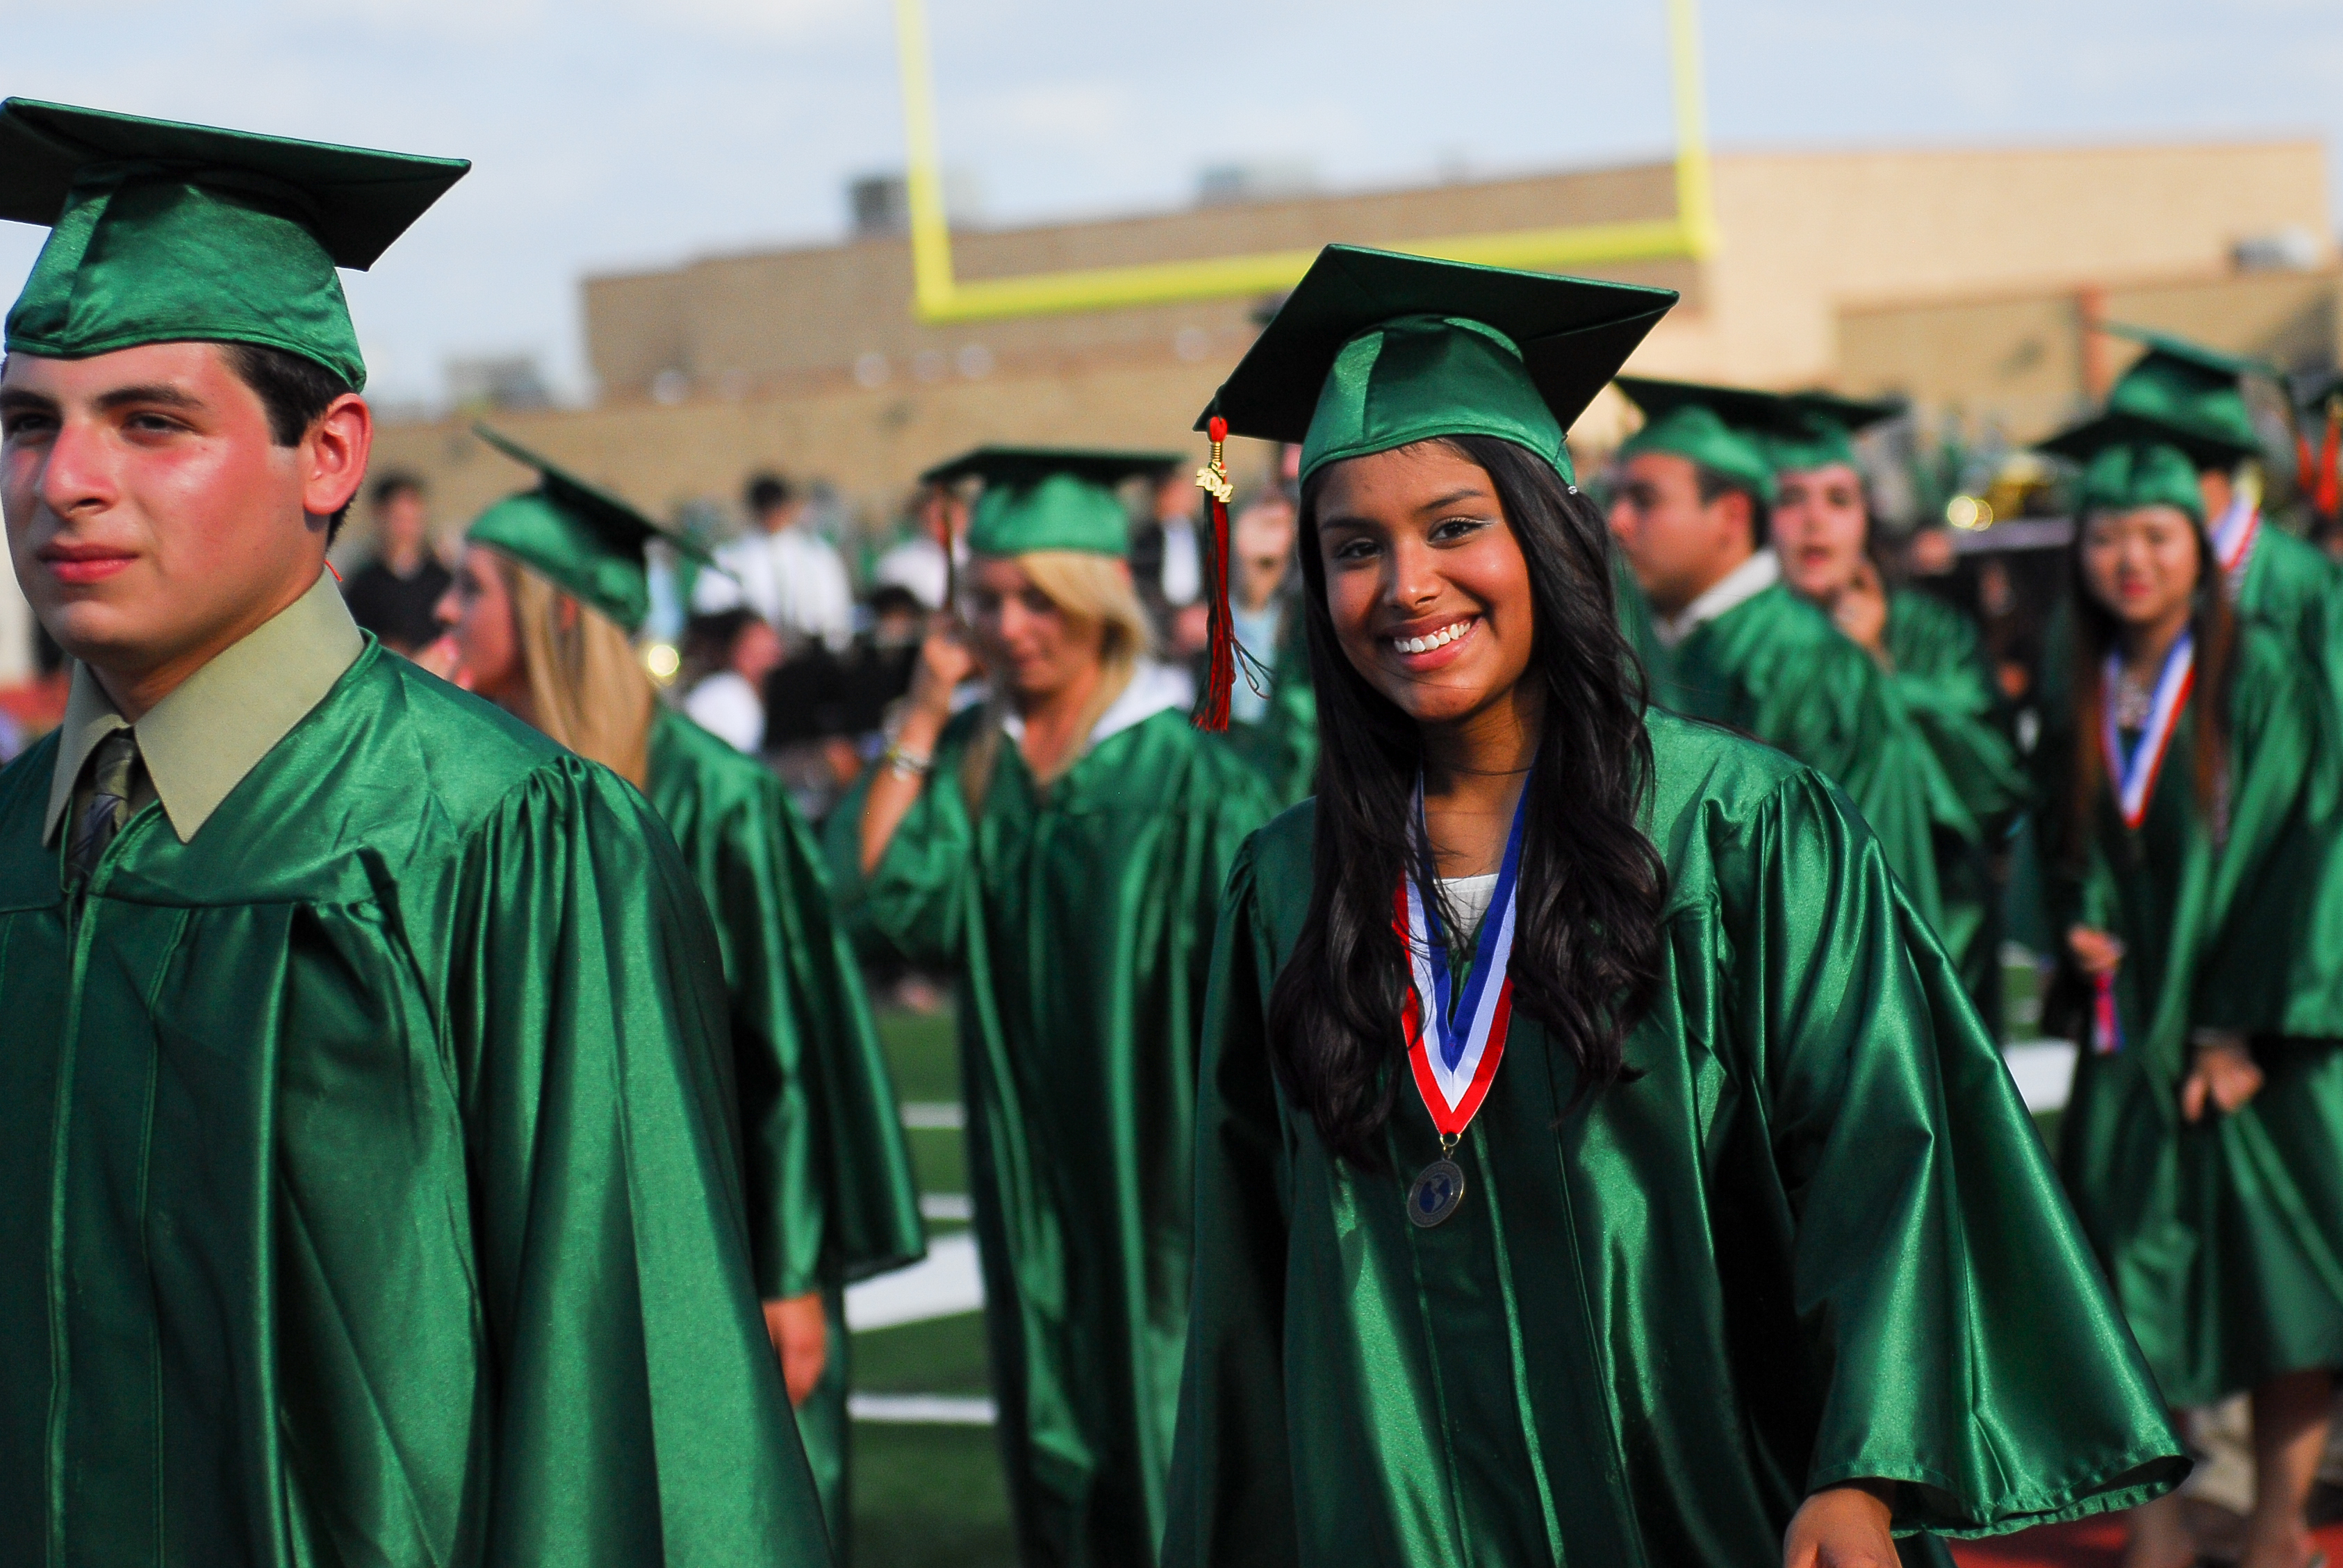 2013 Graduation Celebration: seniors invited to continue the festivities after ceremonies